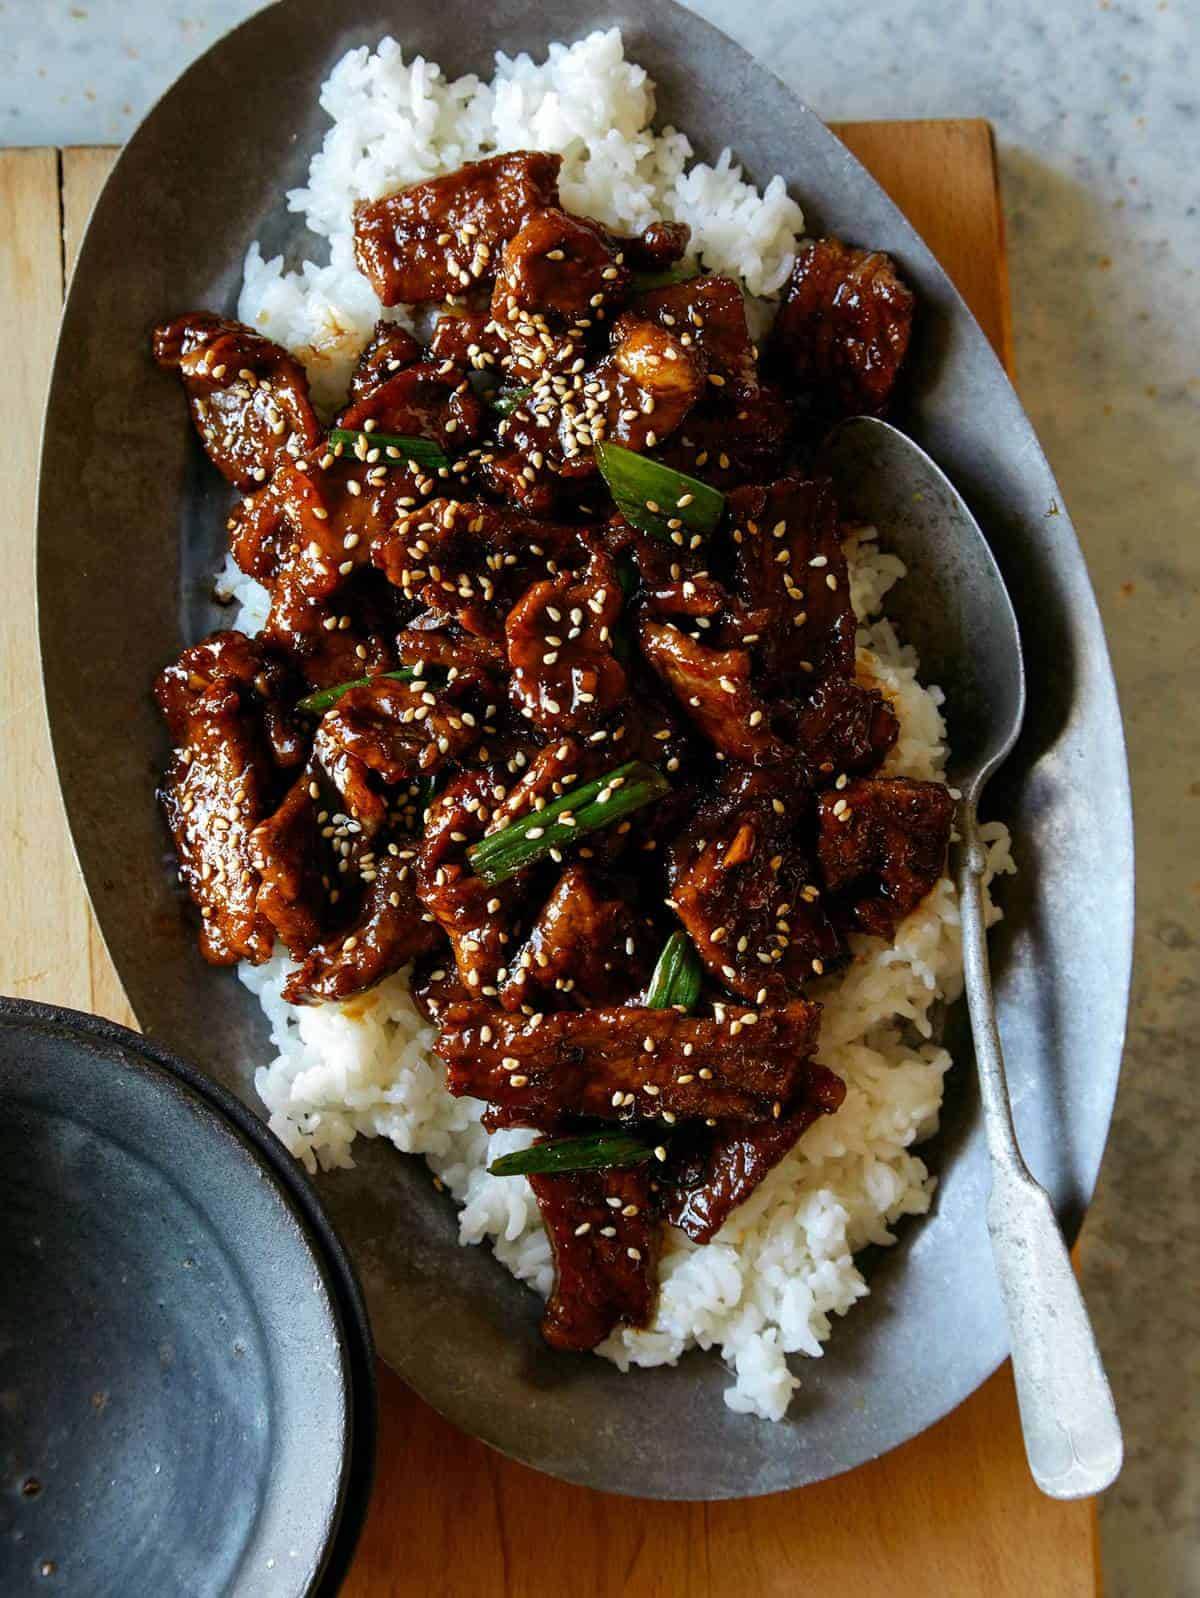 A plate of Mongolian beef on white rice with a spoon.